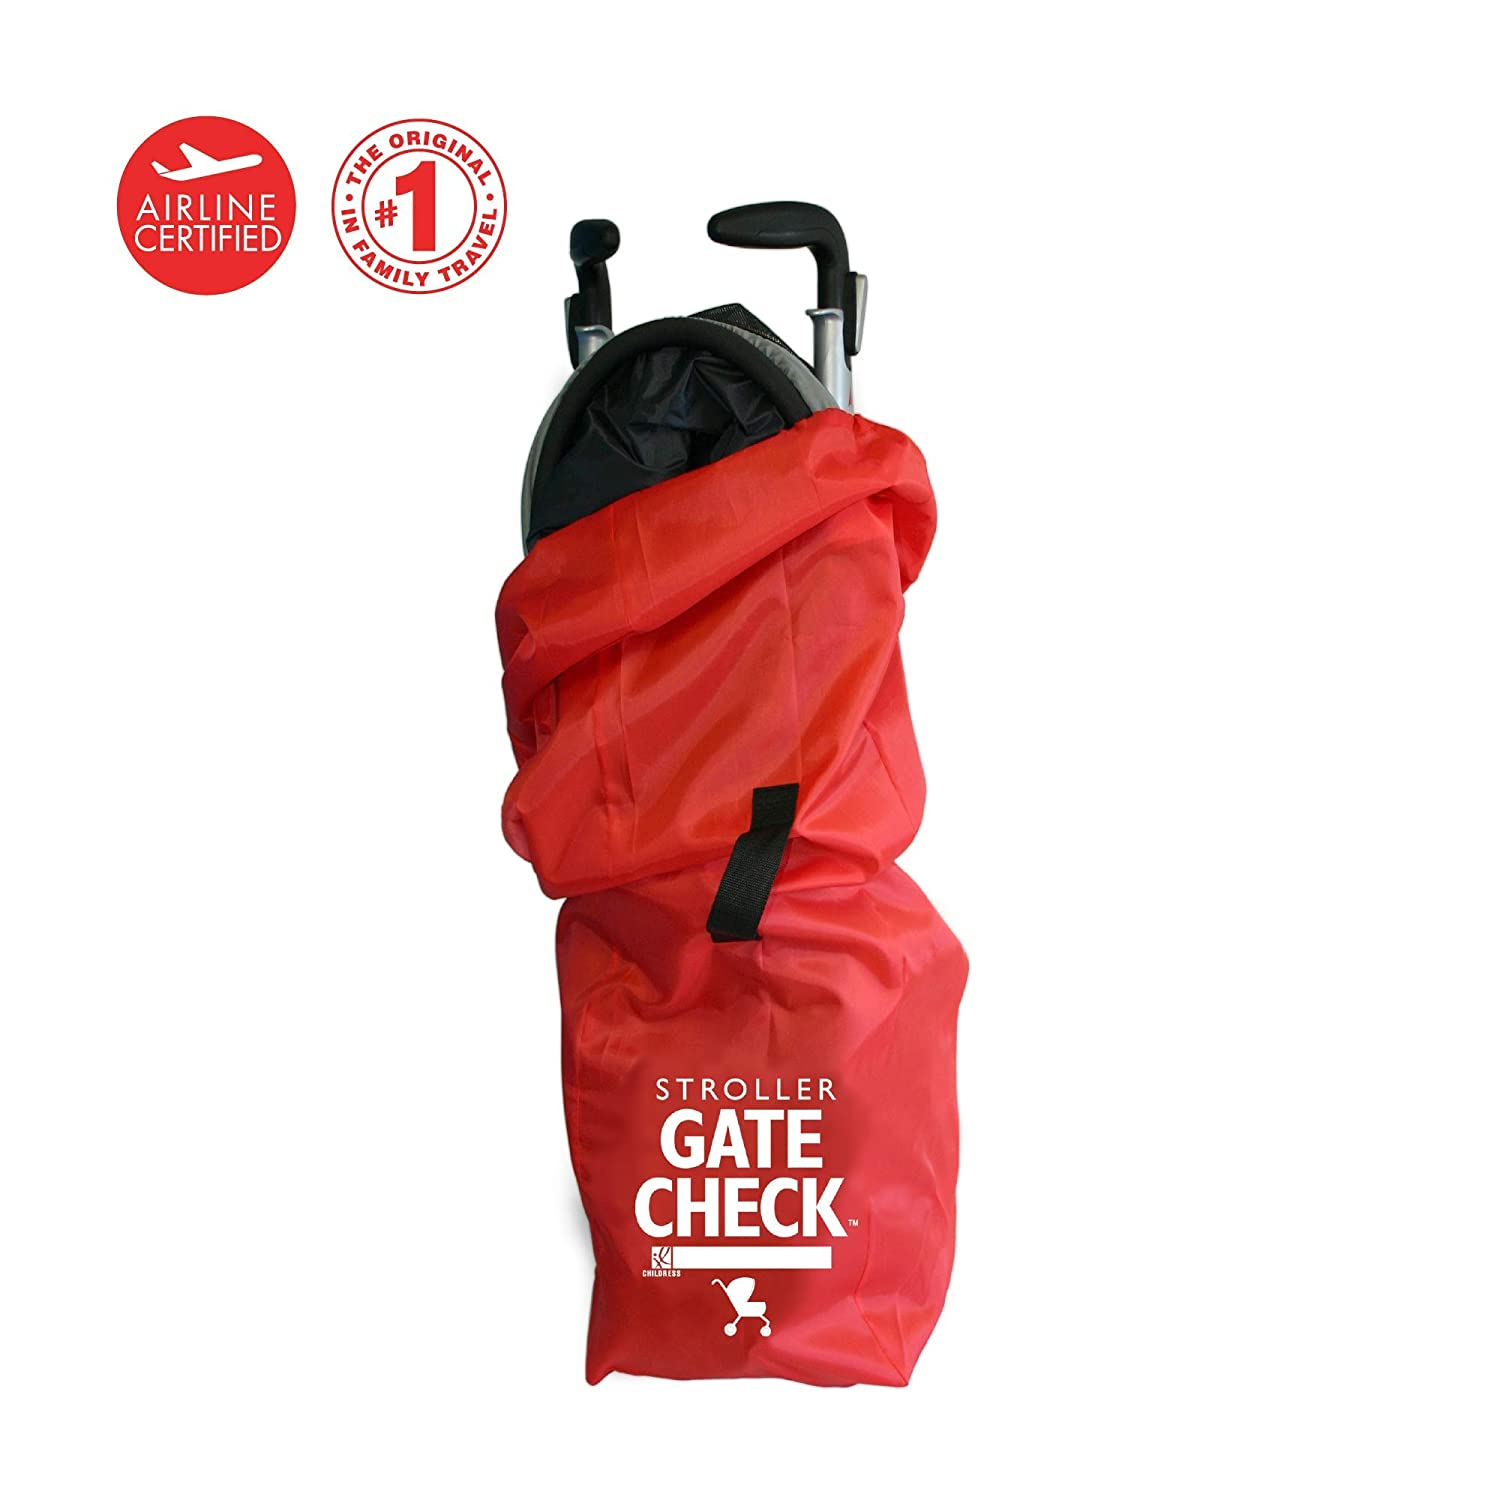 J. L. Childress Gate Check Air Travel Bag for Umbrella Strollers, Red 2111